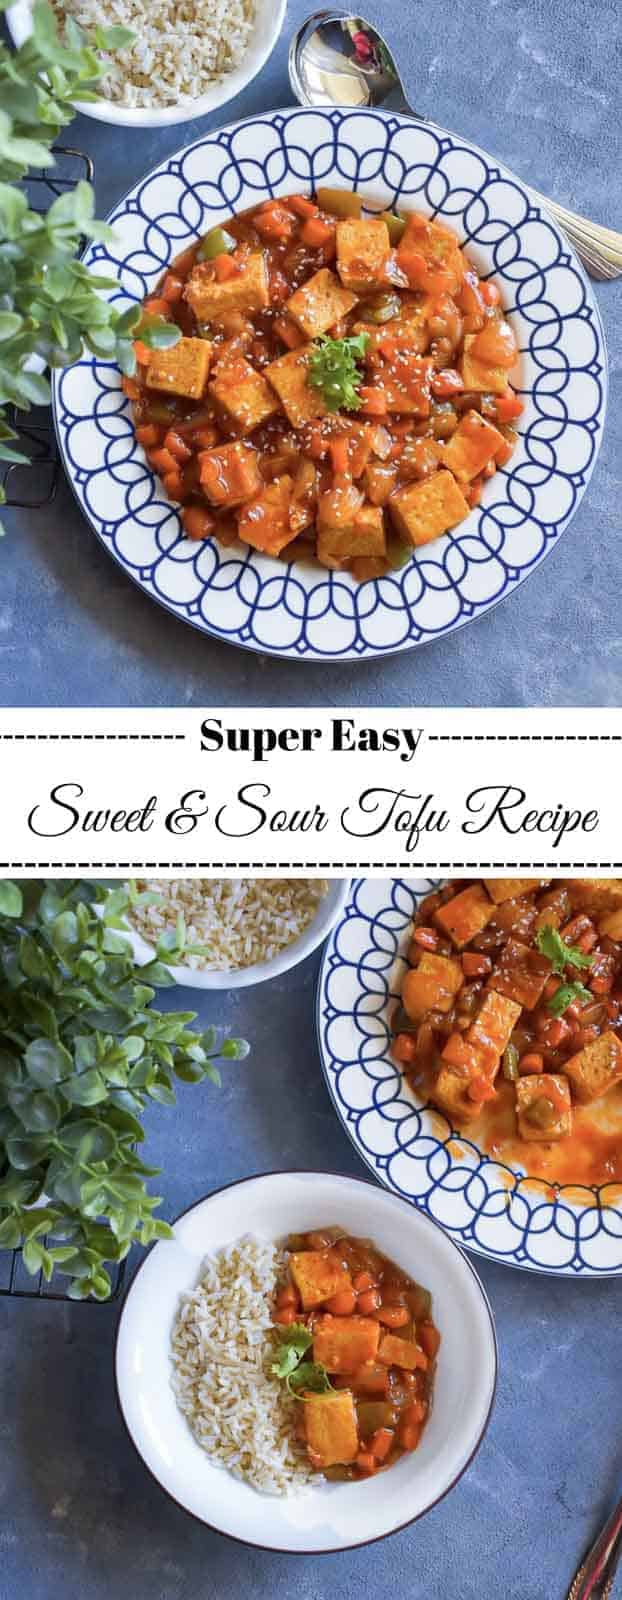 Super Easy Sweet and Sour Tofu Recipe: #tofu #sweet #sour #stirfry